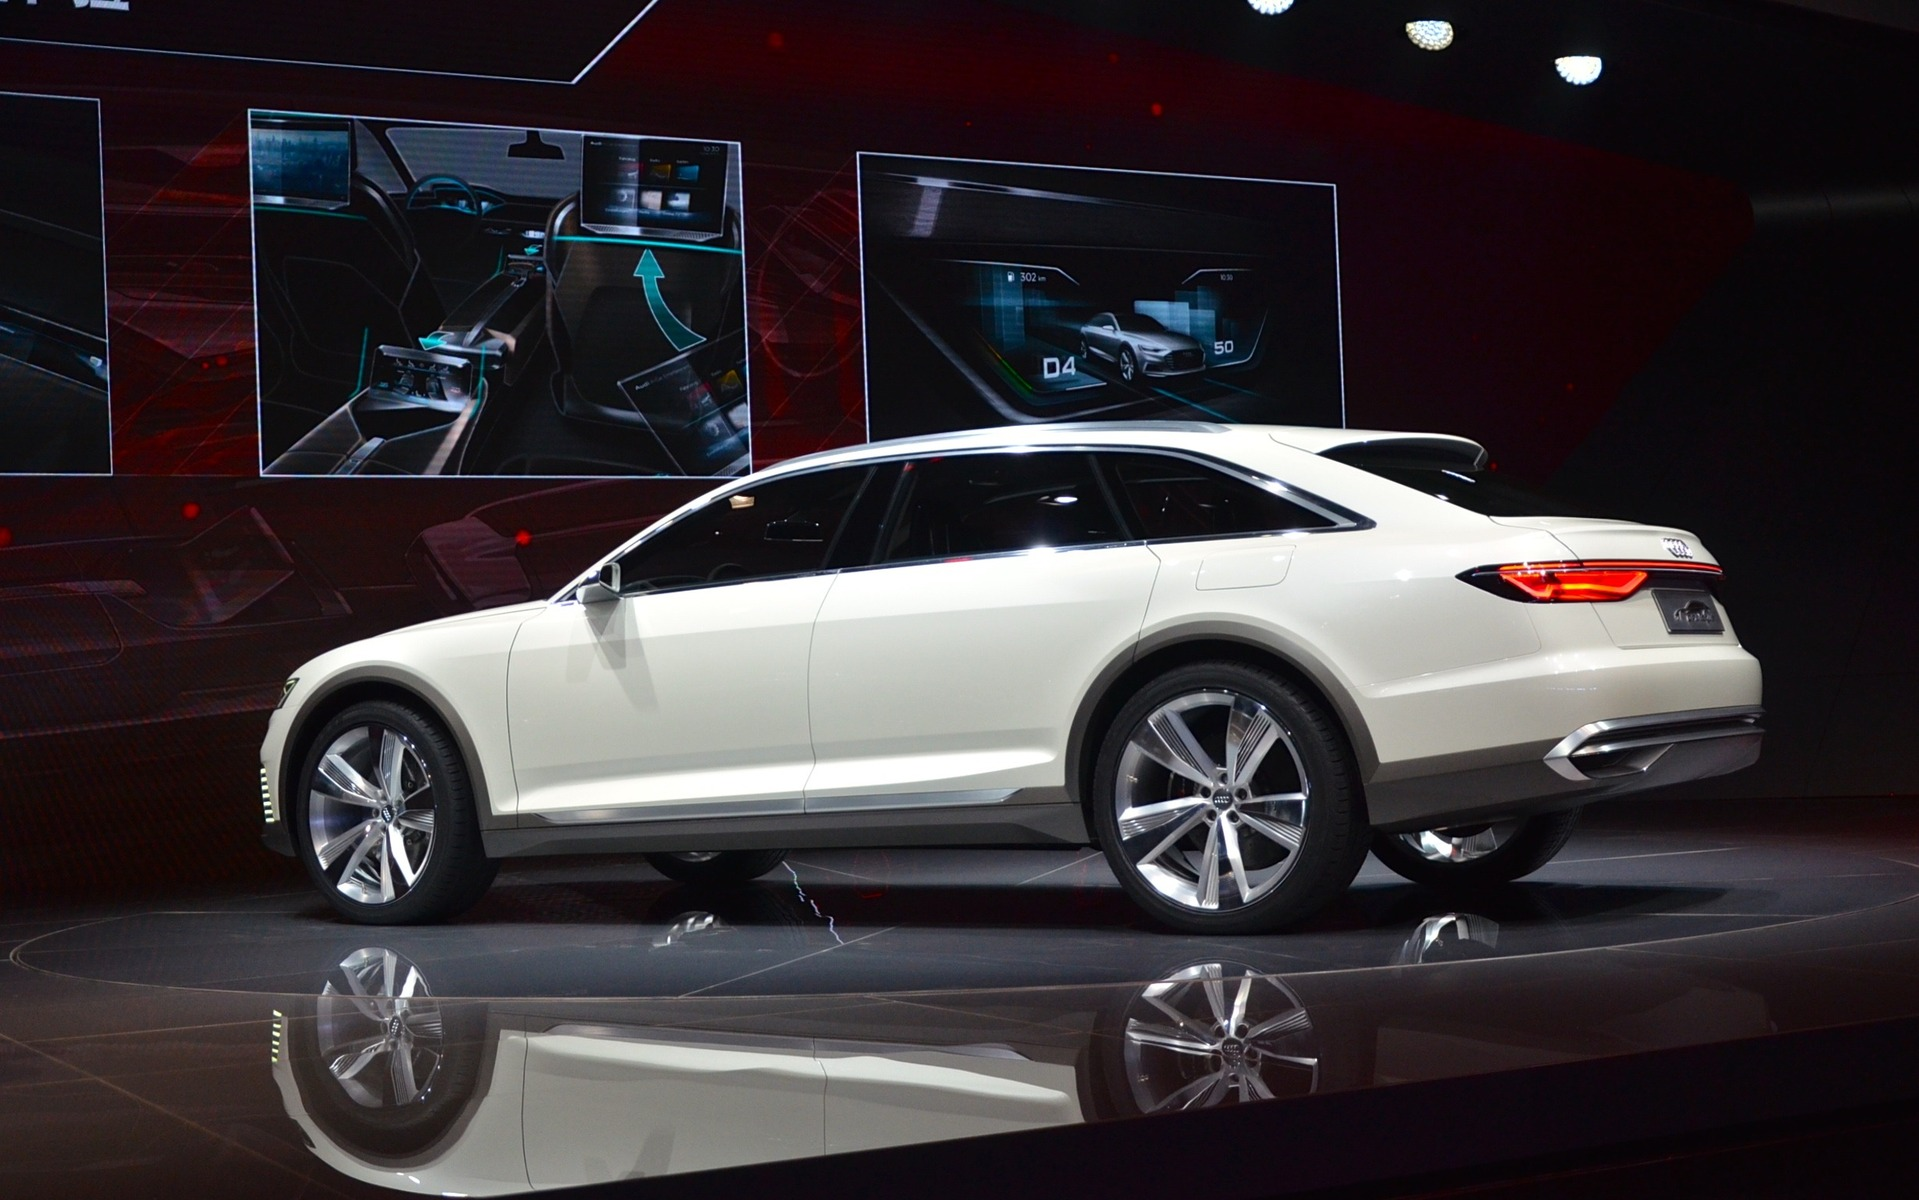 World Premiere Of The Audi Prologue Allroad Concept At